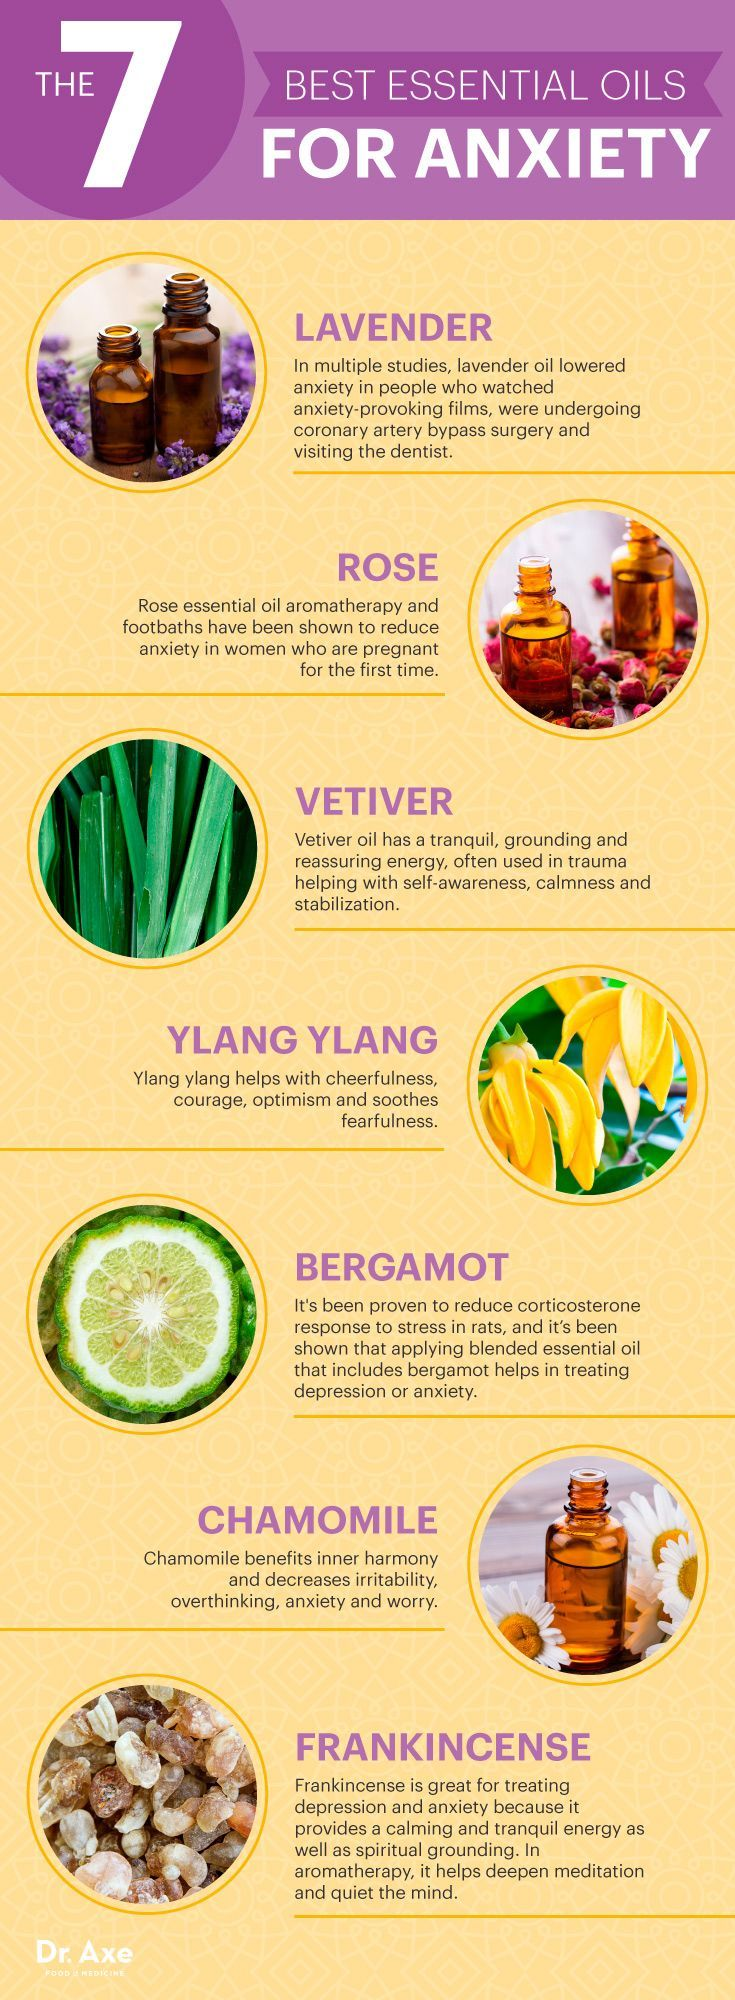 Natural ways to battle stress and anxiety with these essential oils.